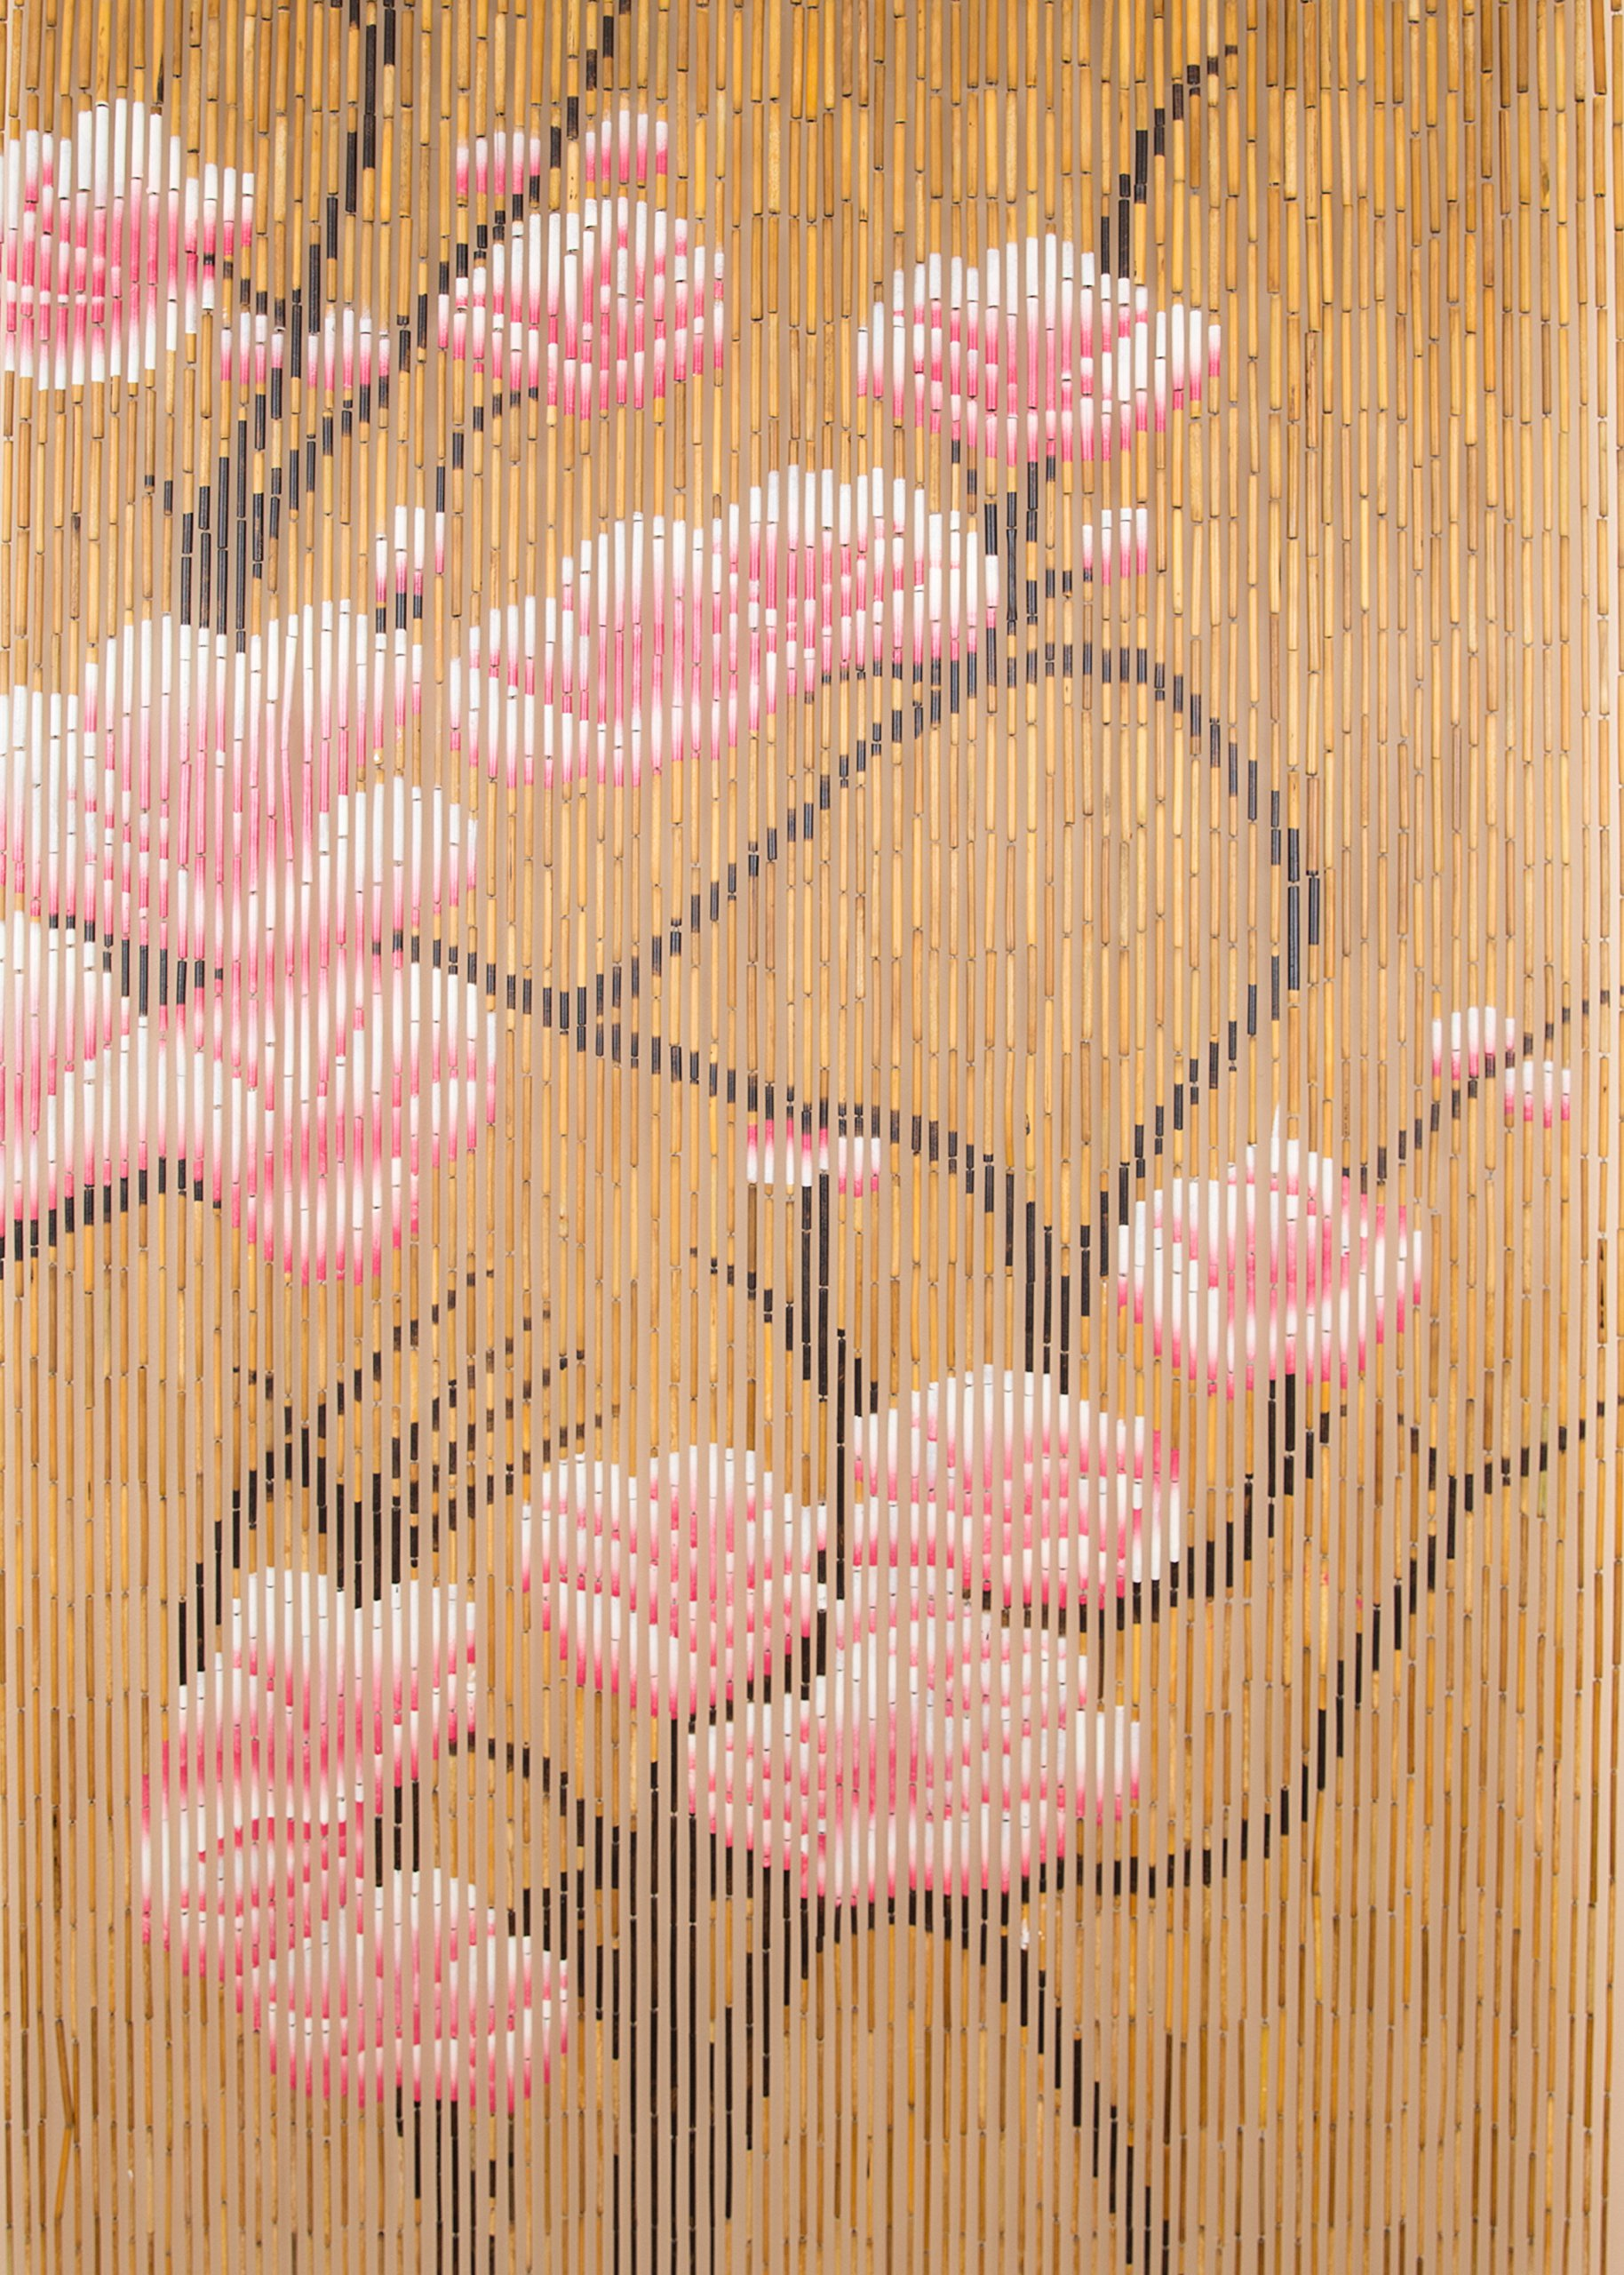 BeadedString Natural Bamboo Wood Beaded Curtain-90 Starnds-80 High-Boho Door Beads-Bohemian Doorway Curtain-35.5'' Wx80 H-Blossom by BeadedString (Image #7)